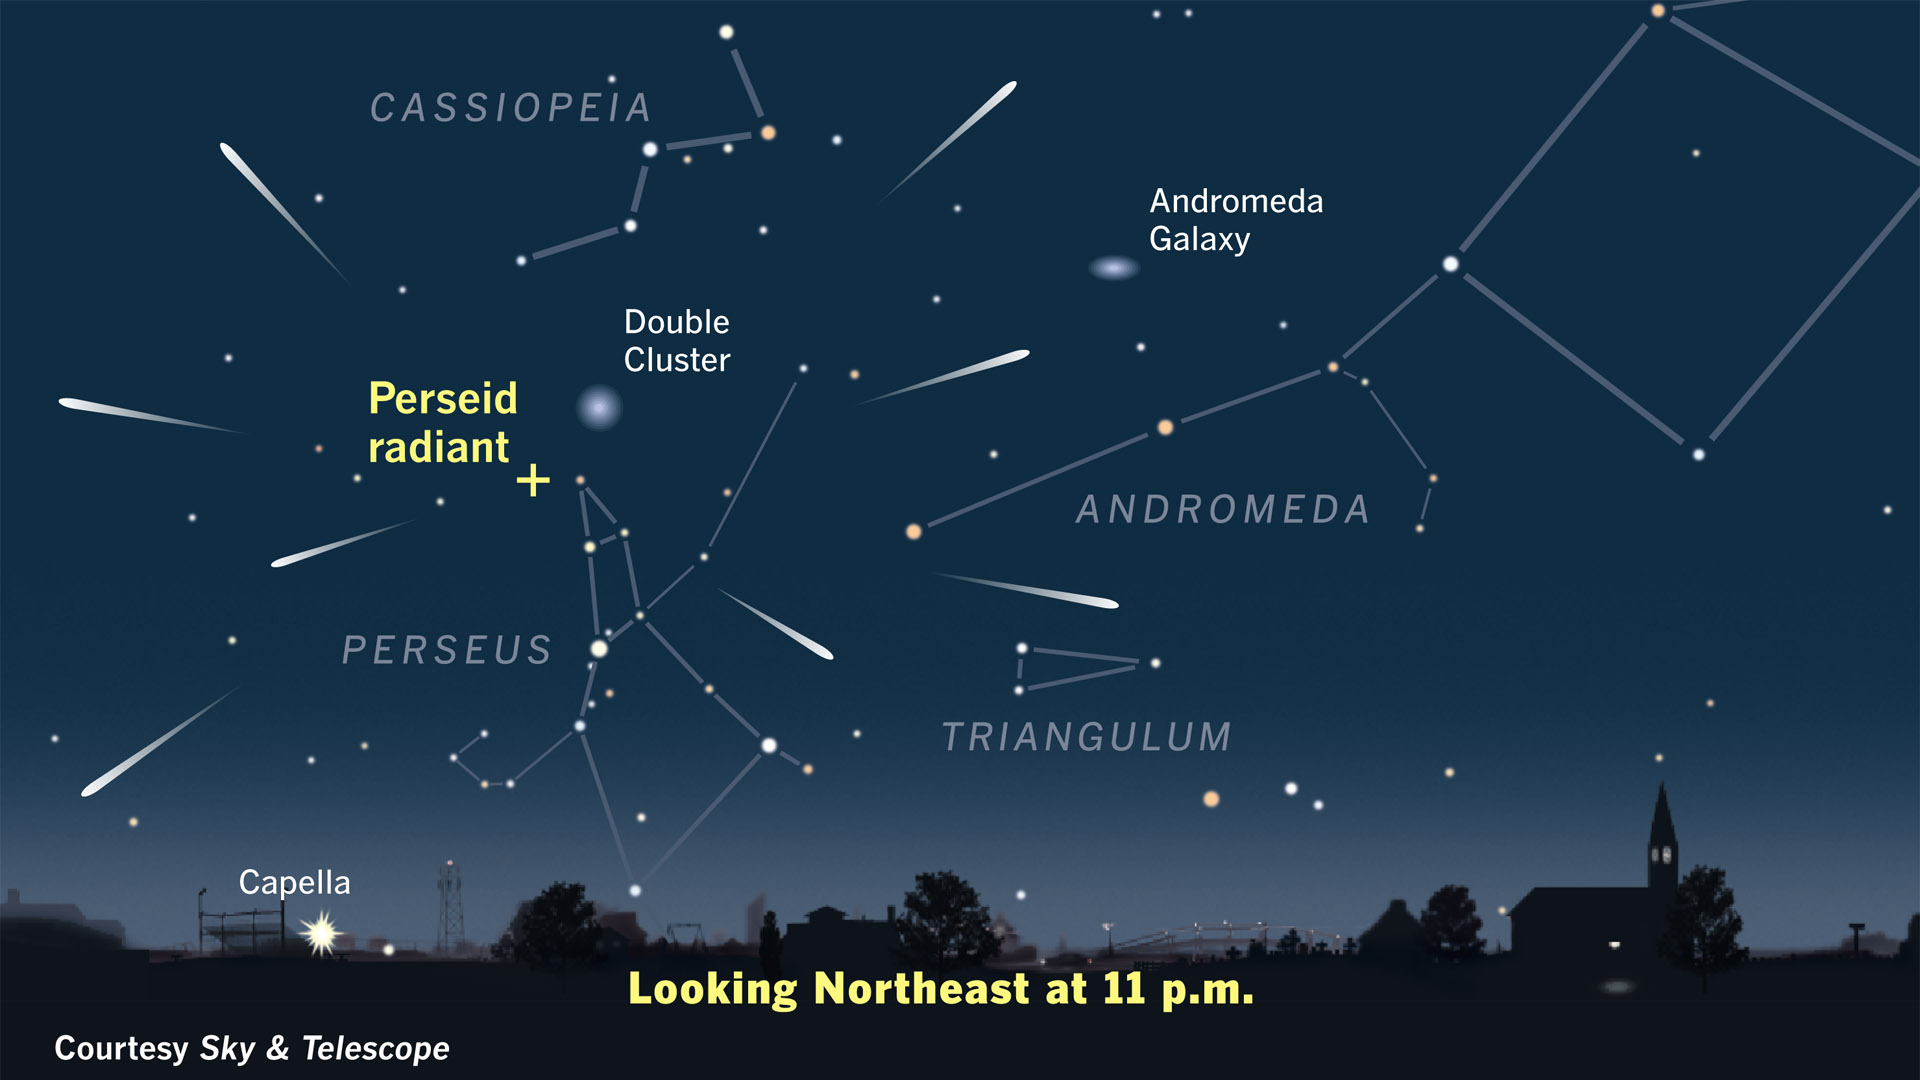 Perseid Meteors Return Viewing Conditions Excellent